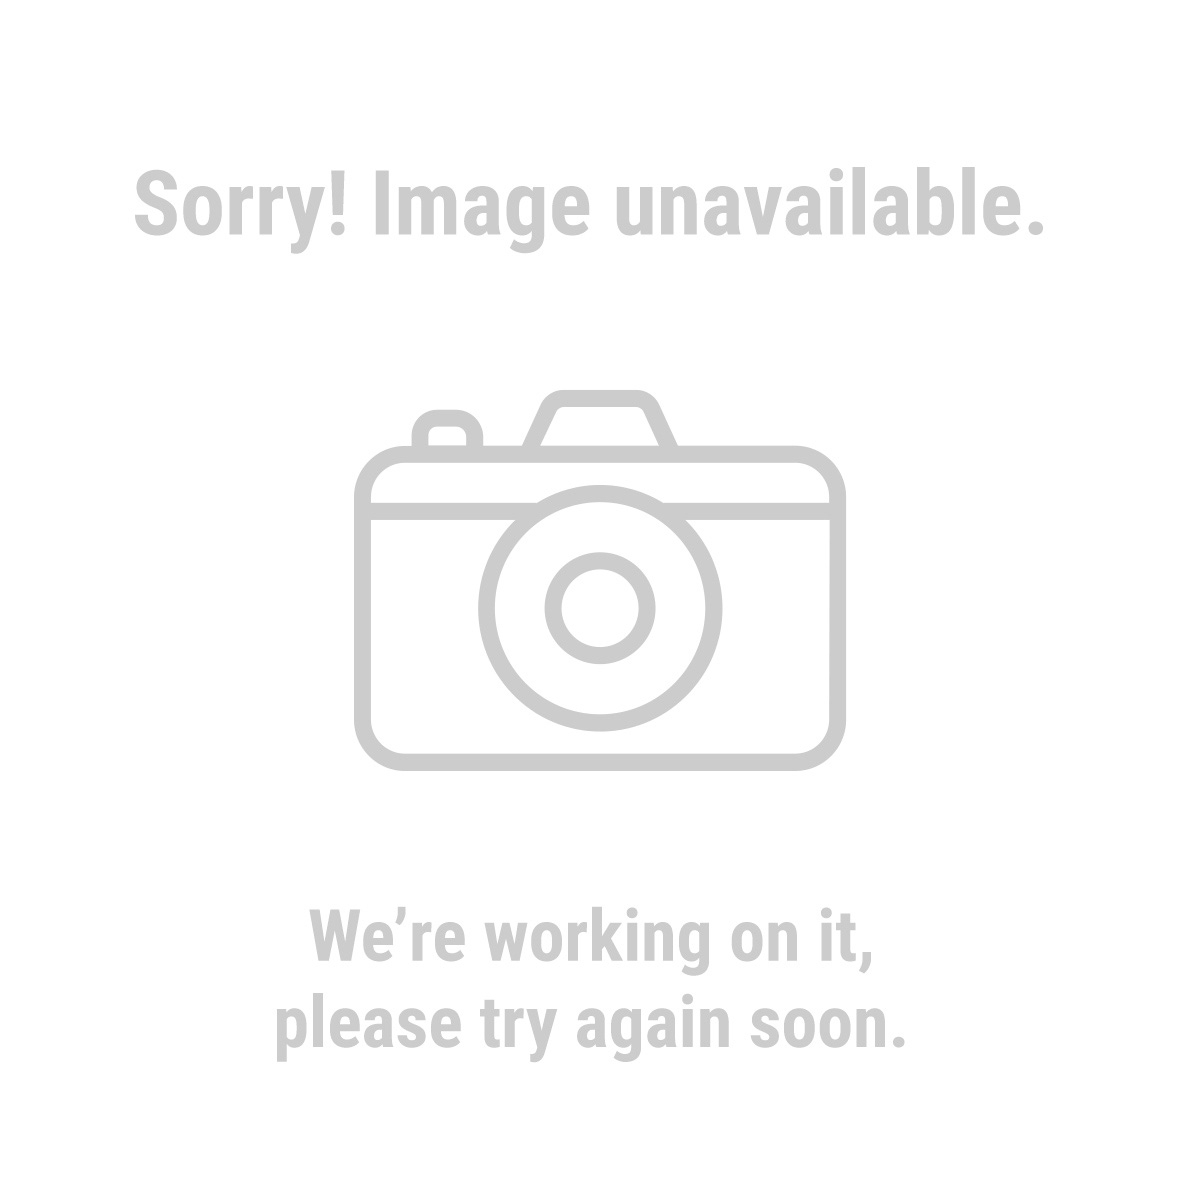 Chicago Electric Welding Systems 42921 0.023'' ER 316 Stainless Steel Welding Wire, 2 Lb. Roll